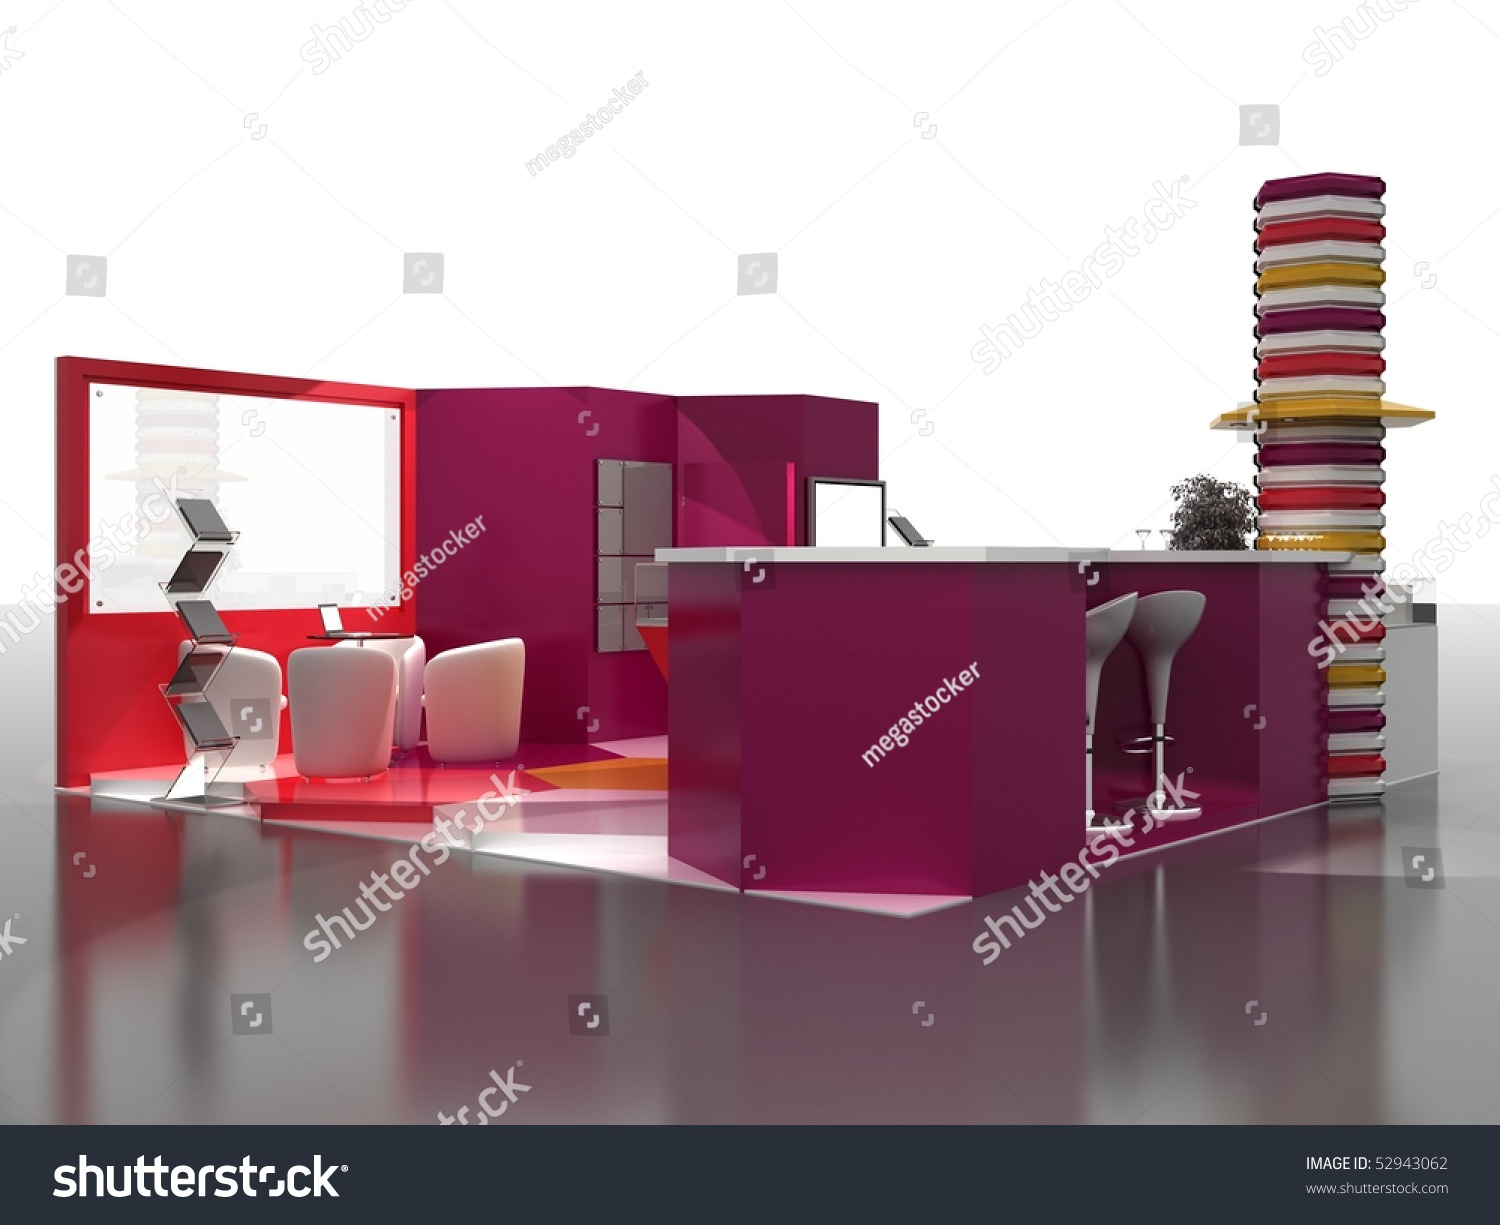 Exhibition Stand Interiors : Exhibition stand interior sample interiors series stock